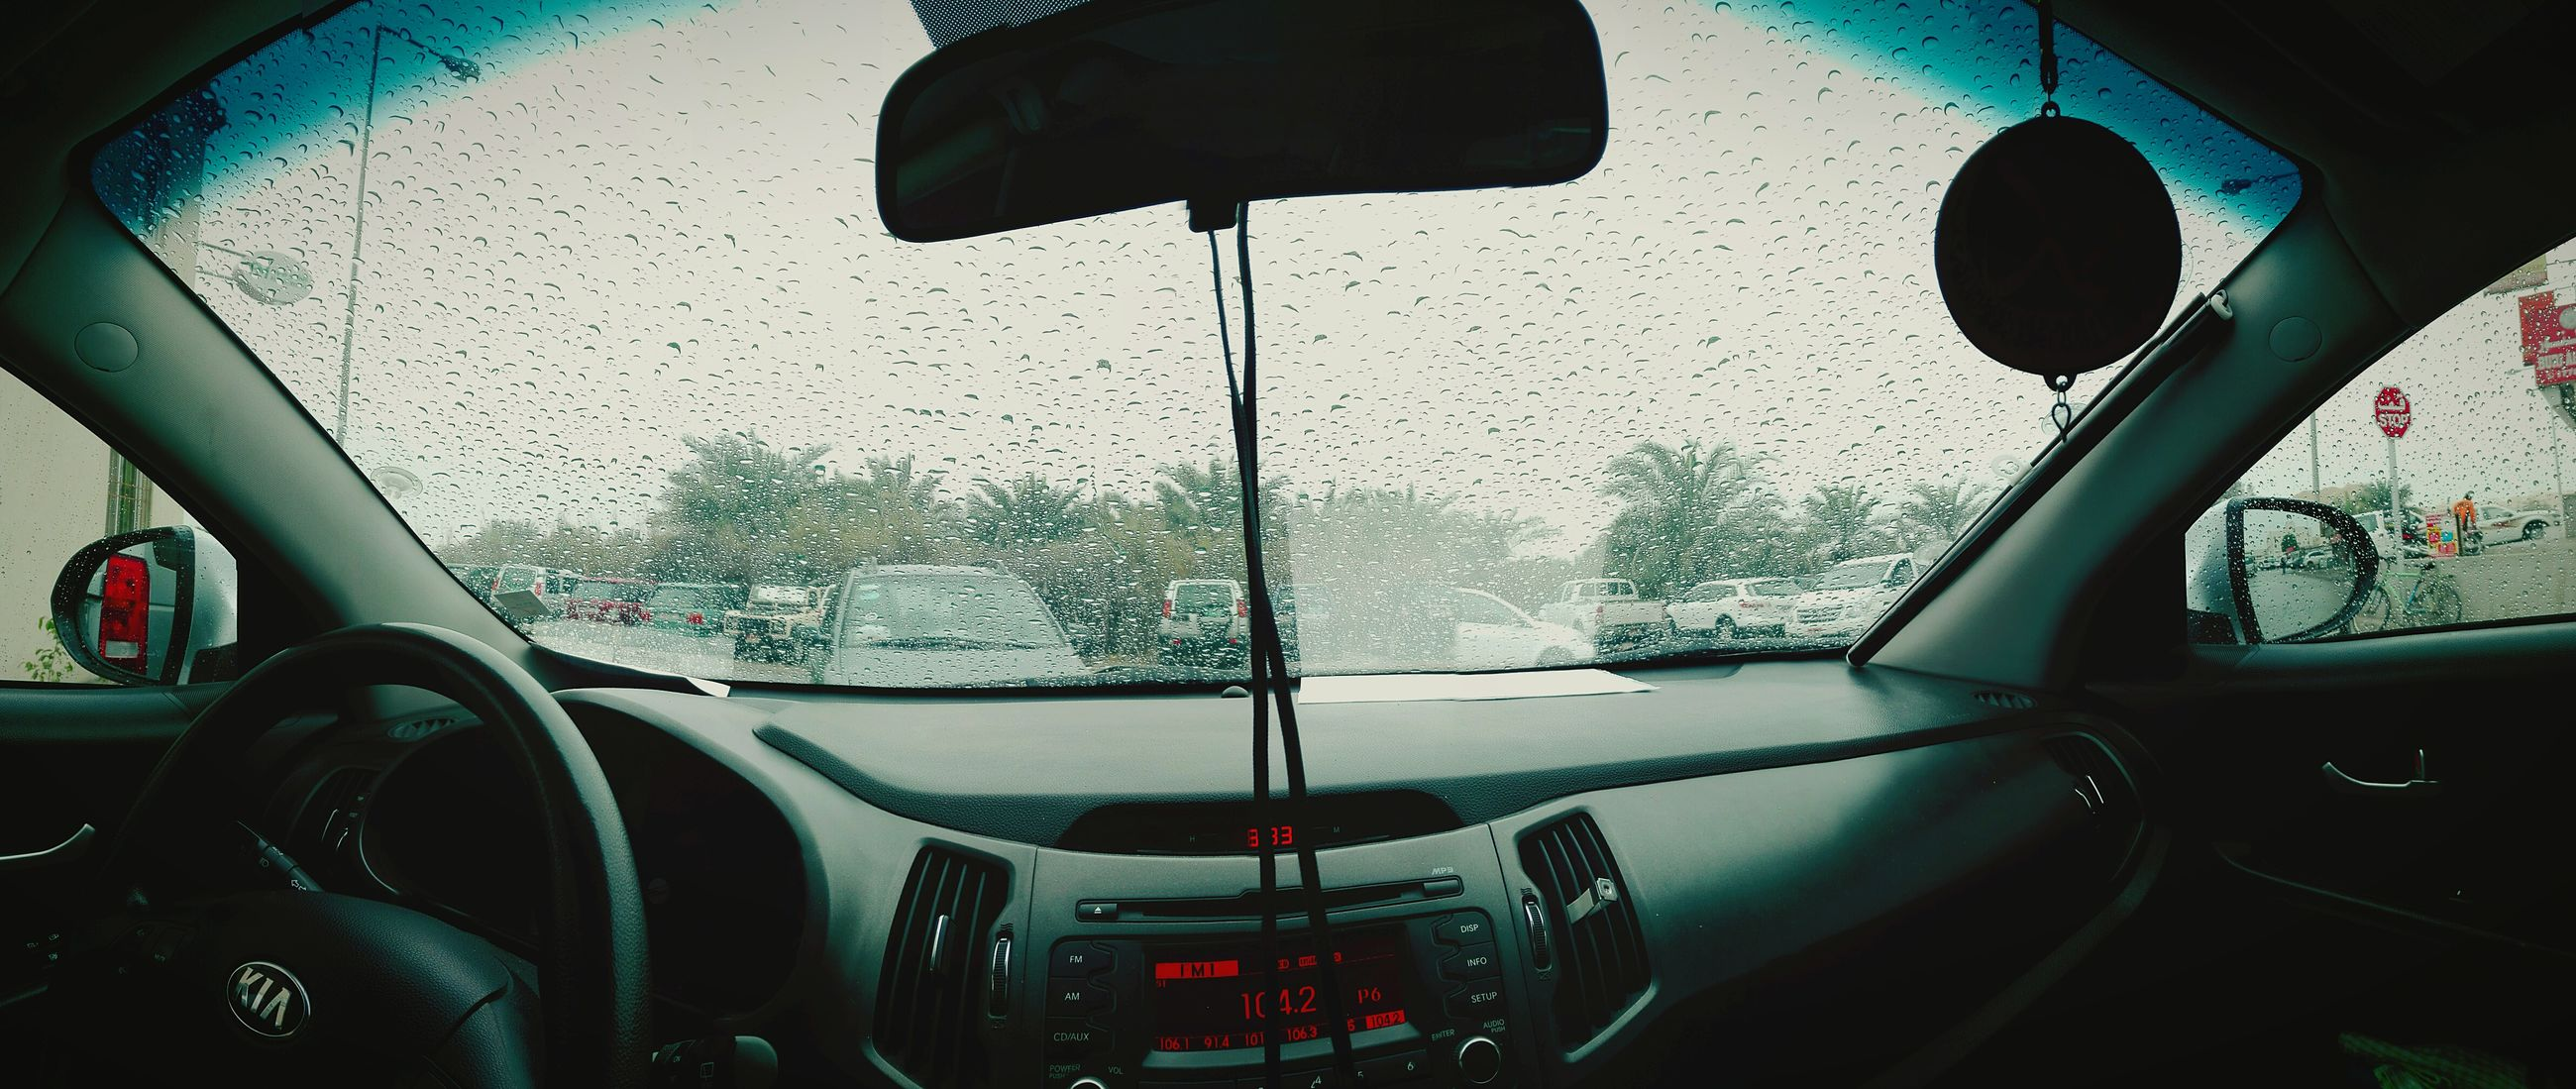 car, vehicle interior, glass - material, transparent, transportation, mode of transport, window, car interior, windshield, land vehicle, wet, close-up, no people, dashboard, windscreen, steering wheel, day, water, indoors